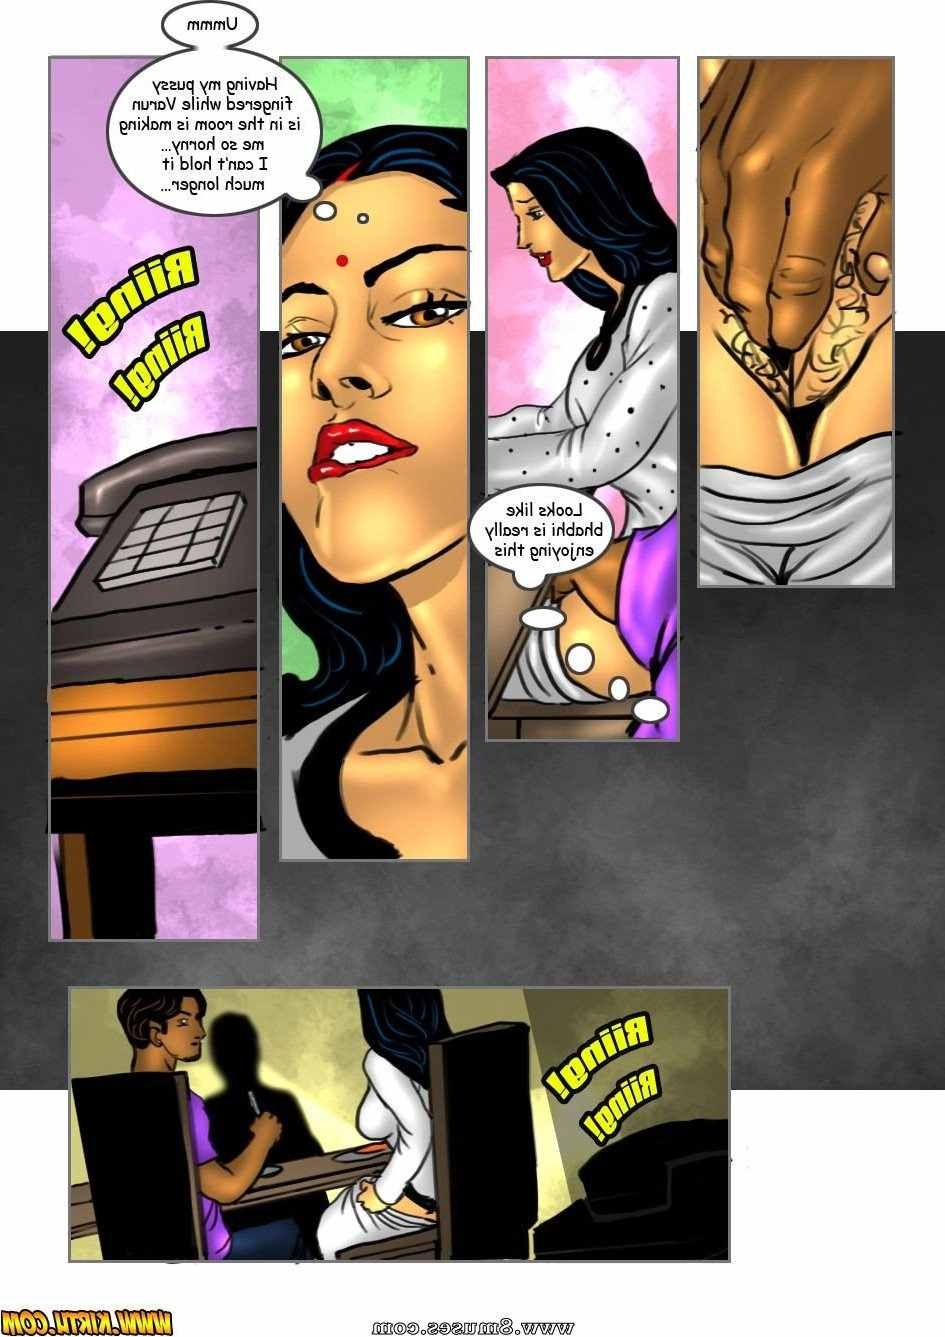 Kirtu_com-Comics/Savita-Bhabhi/Savita-Bhabhi-Episode-17-Double-Trouble-Part-2 Savita_Bhabhi_-_Episode_17__Double_Trouble_Part_2__8muses_-_Sex_and_Porn_Comics_6.jpg